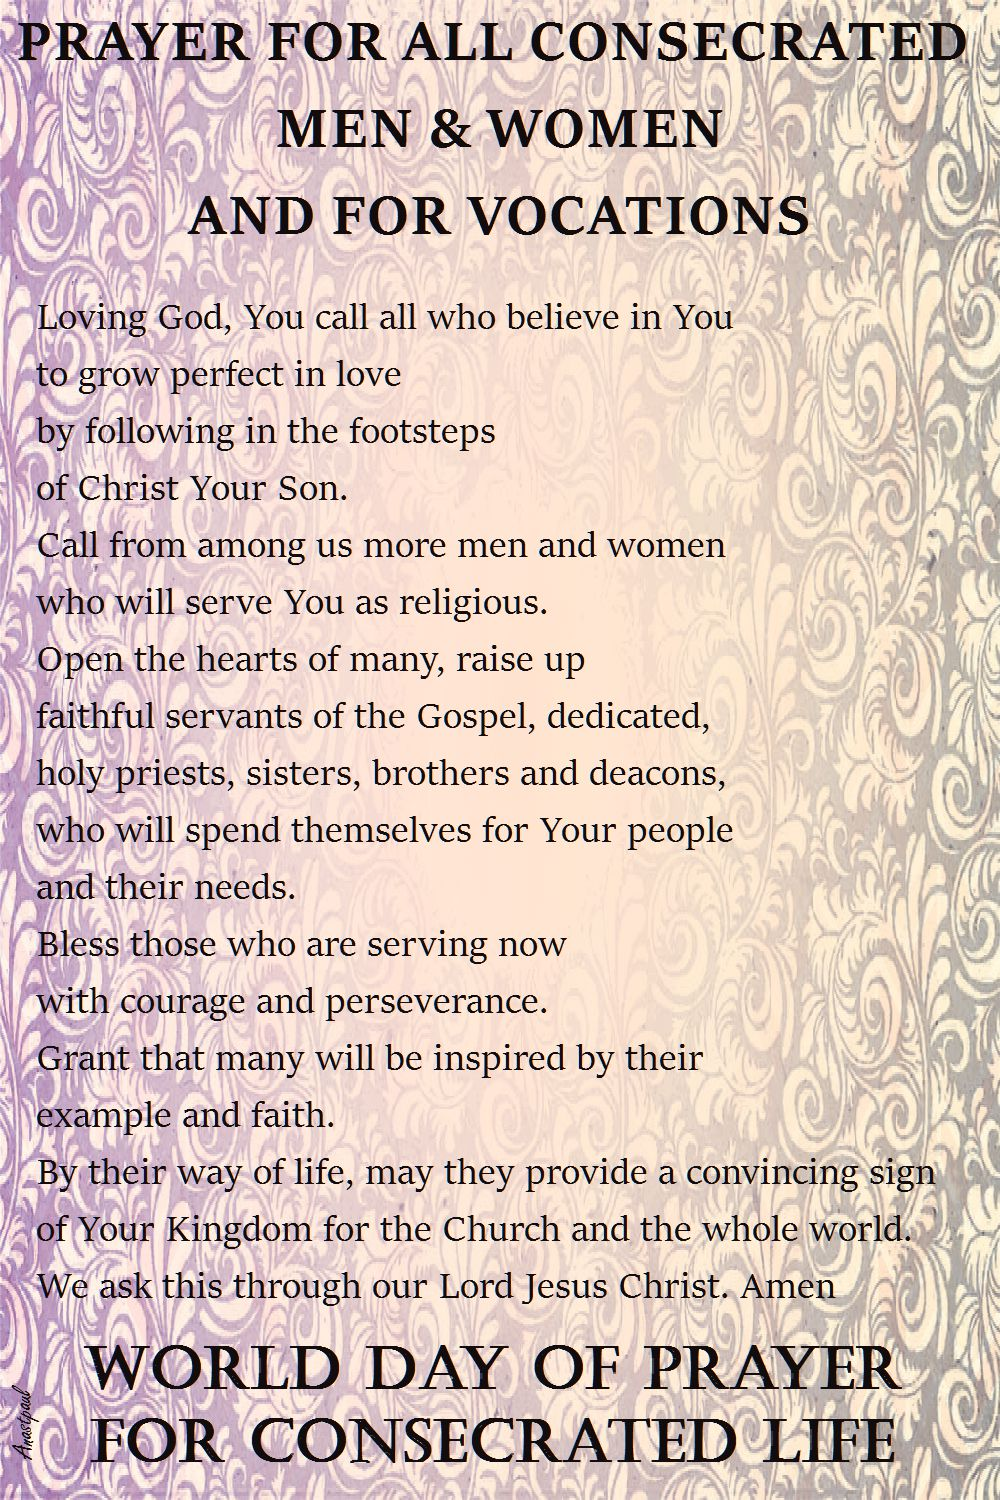 prayer-for-consecrated-and-vocations